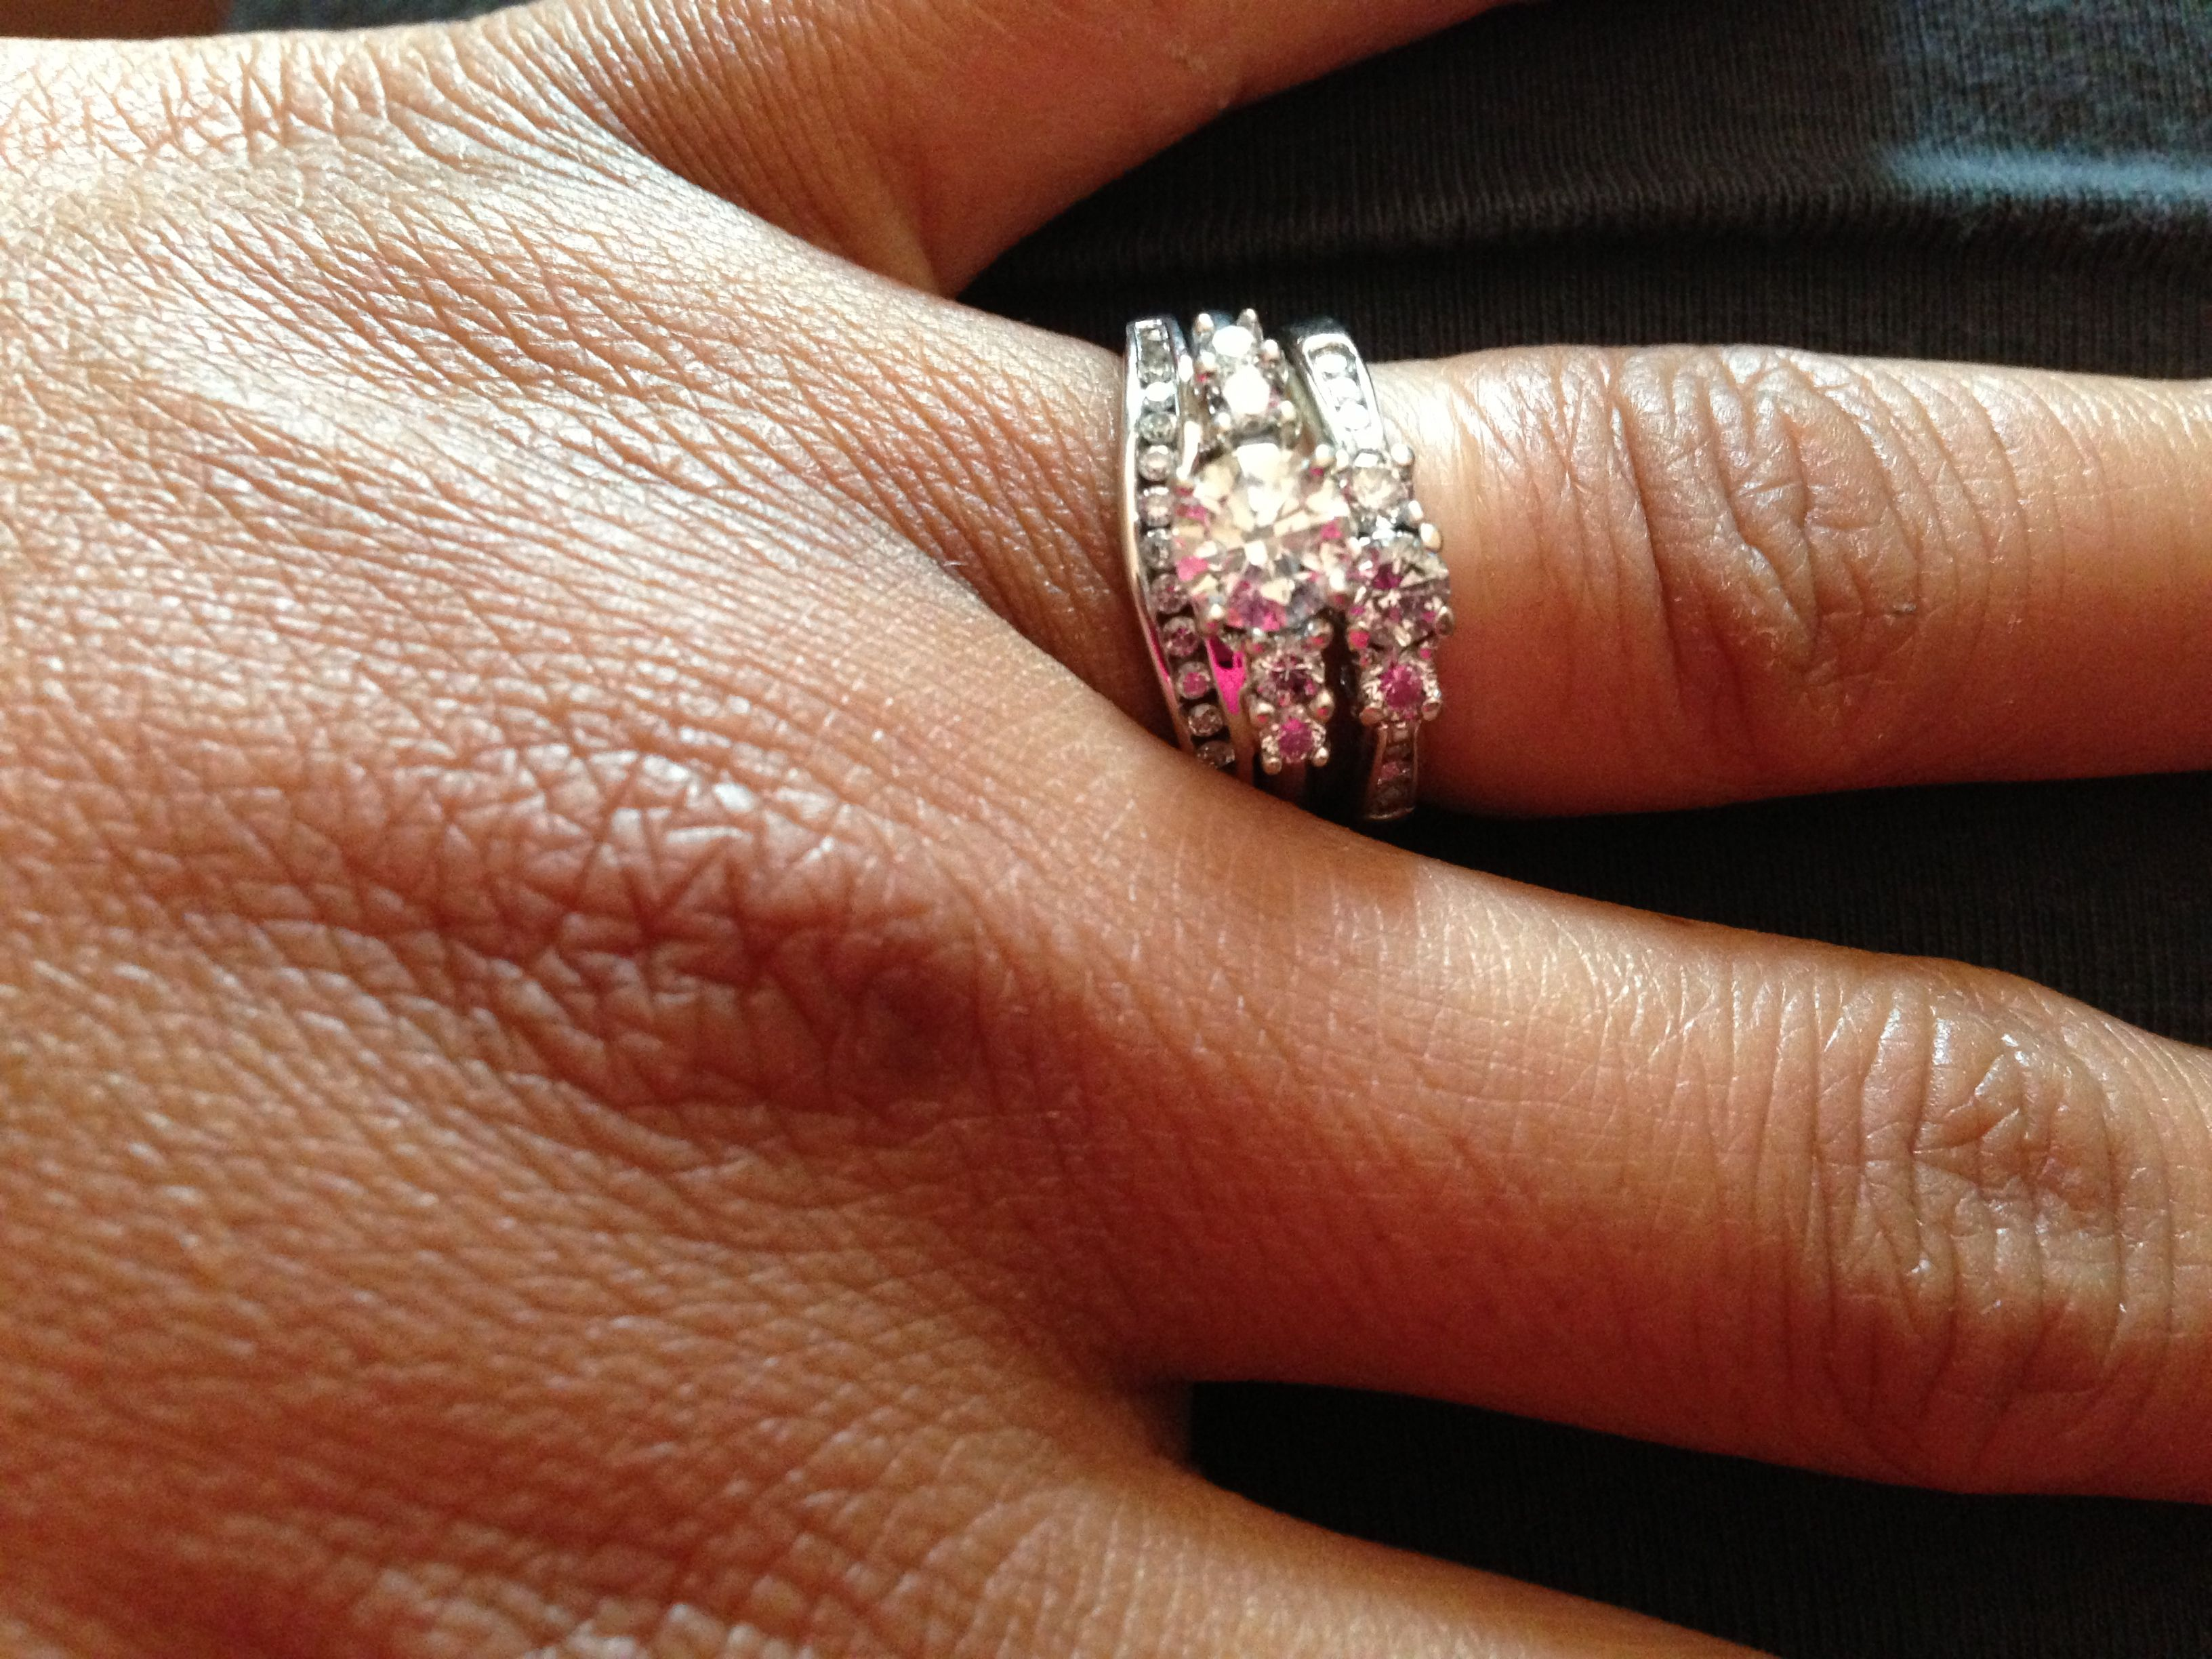 Getting the sparkle darkle back in your wedding ring! Soak